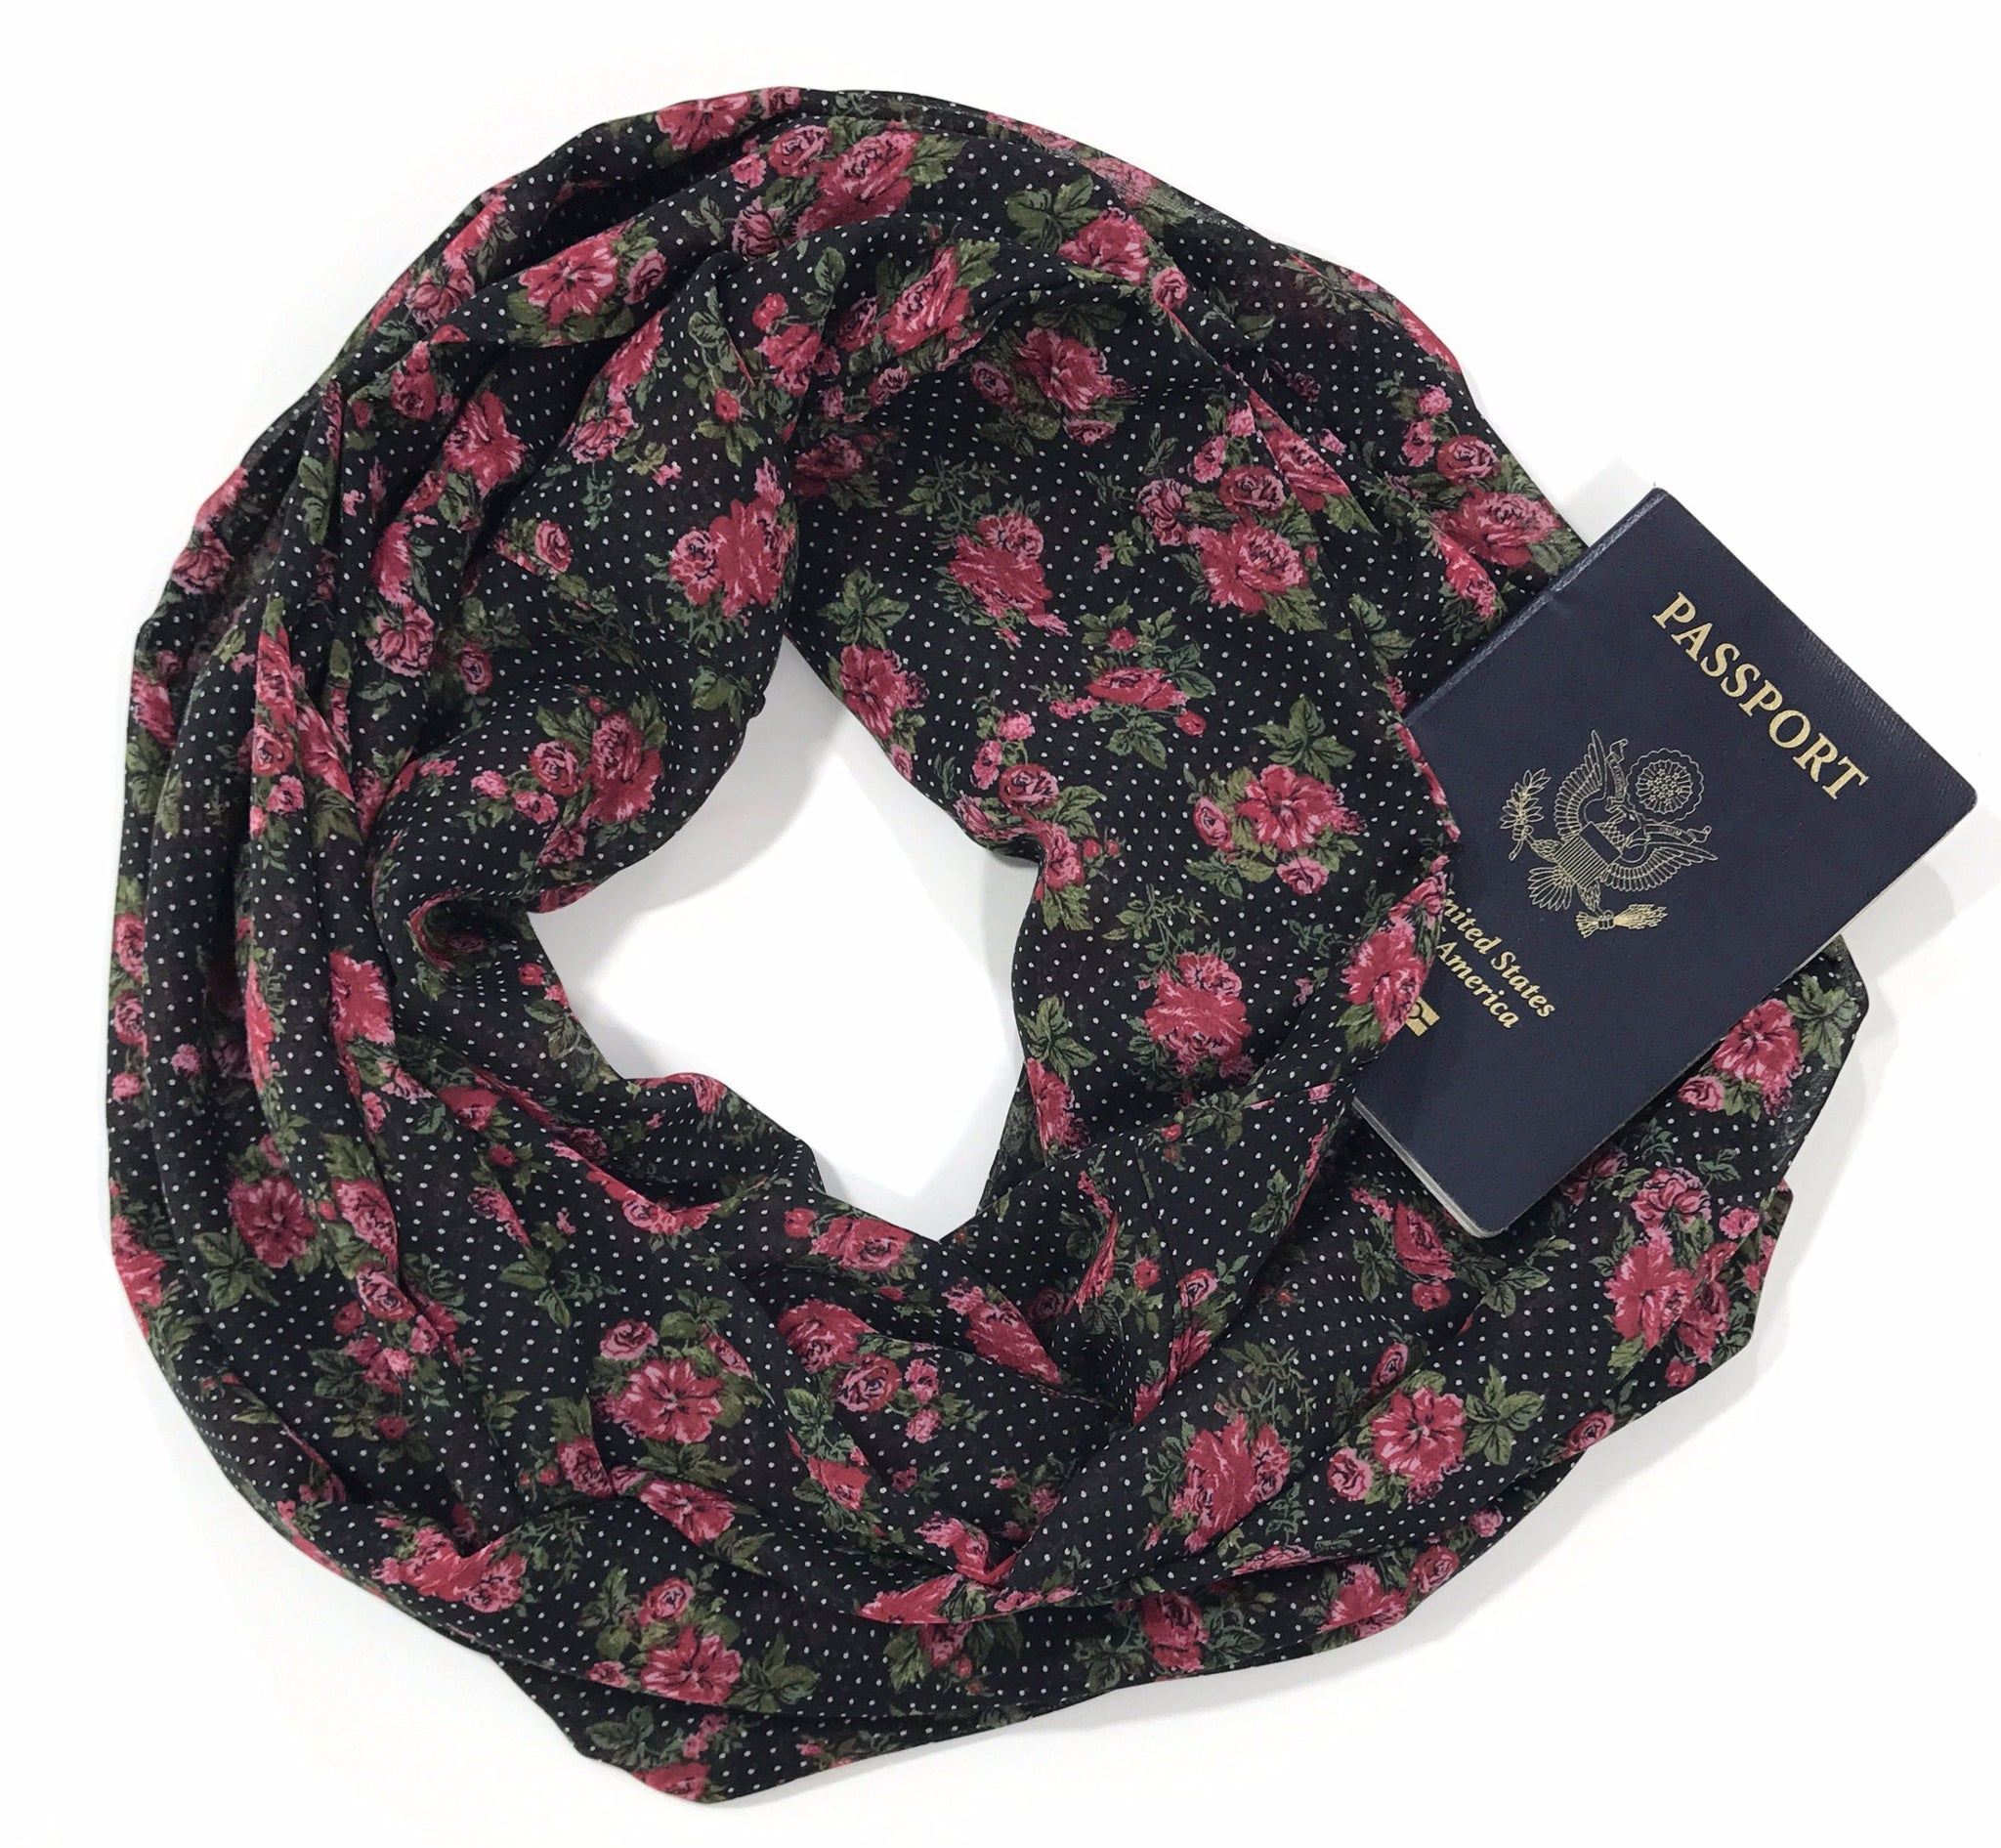 Polka Dot Floral Chiffon Infinity Scarf with Pocket